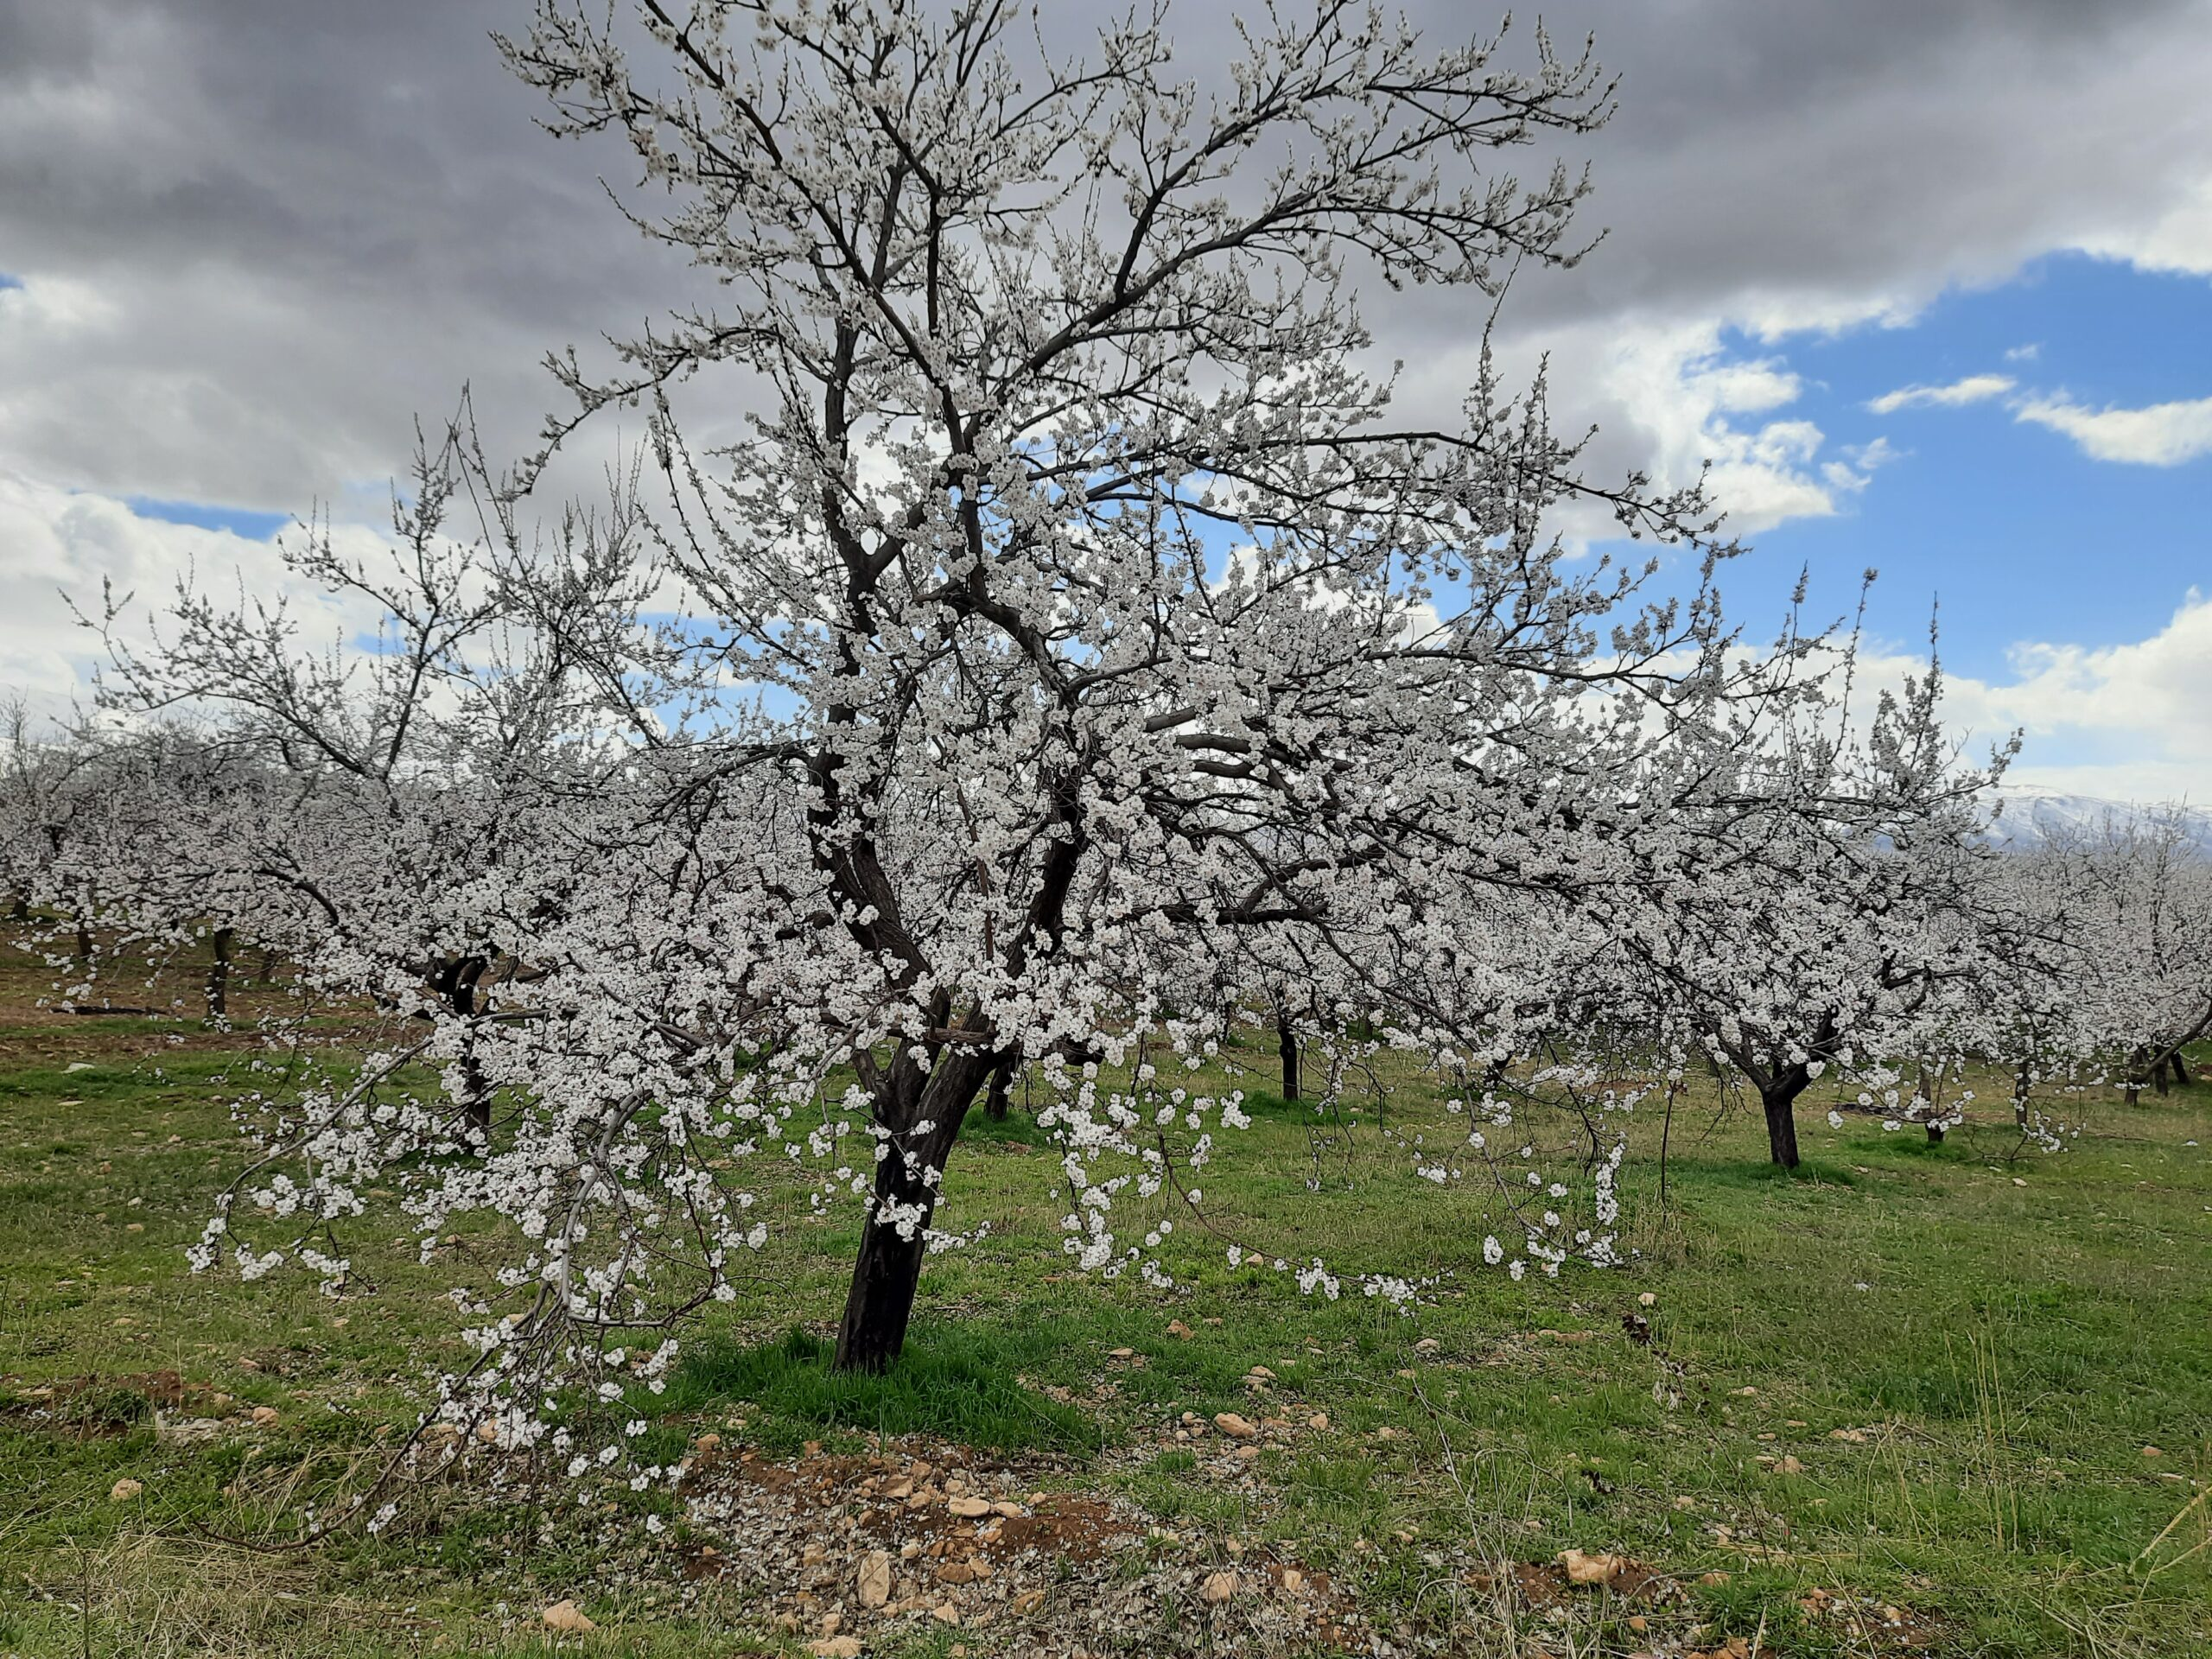 Spring in Malatya-The Apricot Trees have blossomed